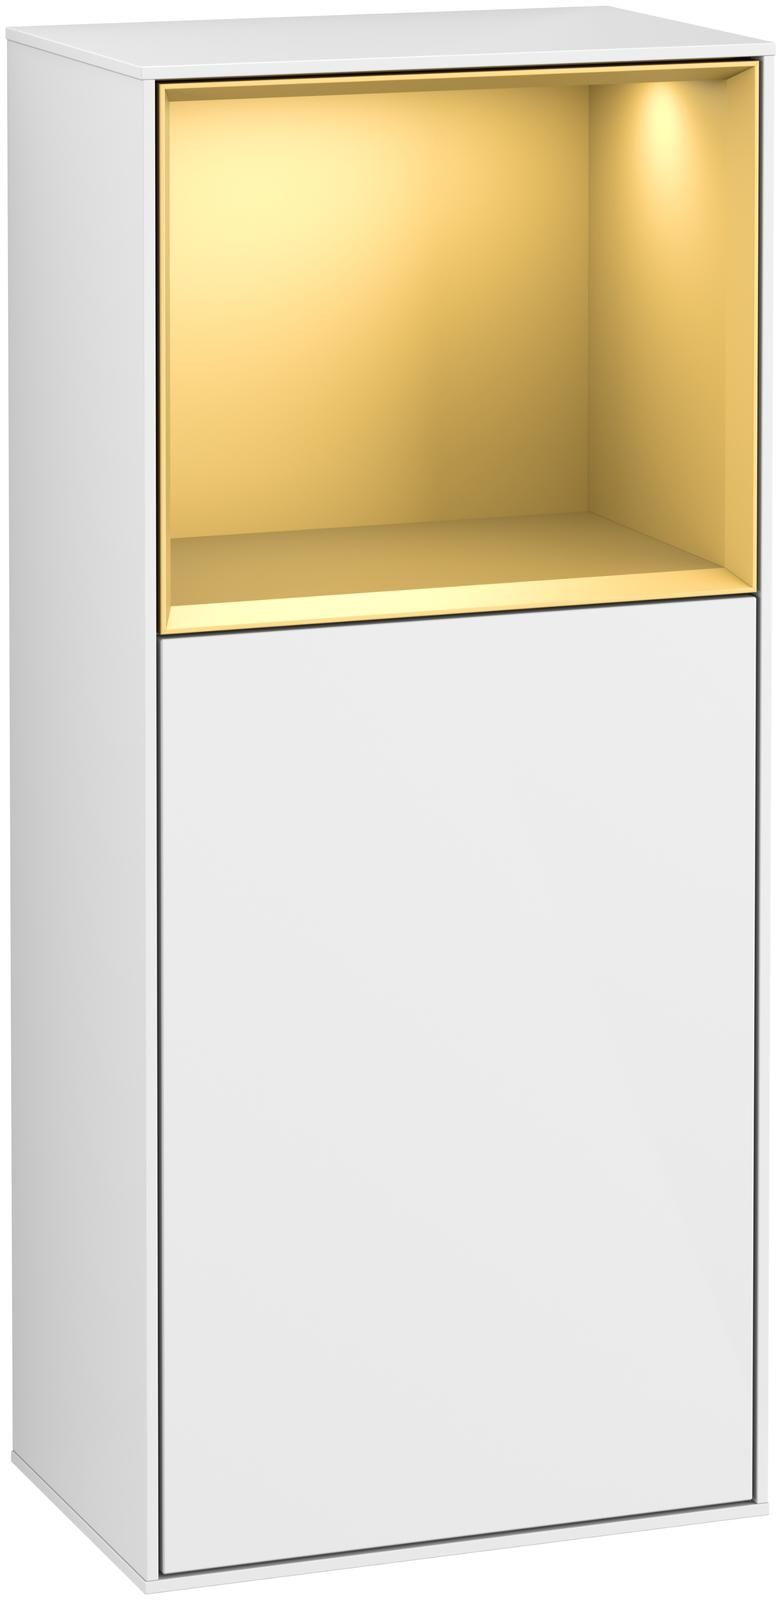 Villeroy & Boch Finion F52 Seitenschrank mit Regalelement 1 Tür Anschlag links LED-Beleuchtung B:41,8xH:93,6xT:27cm Front, Korpus: Glossy White Lack, Regal: Gold Matt F520HFGF